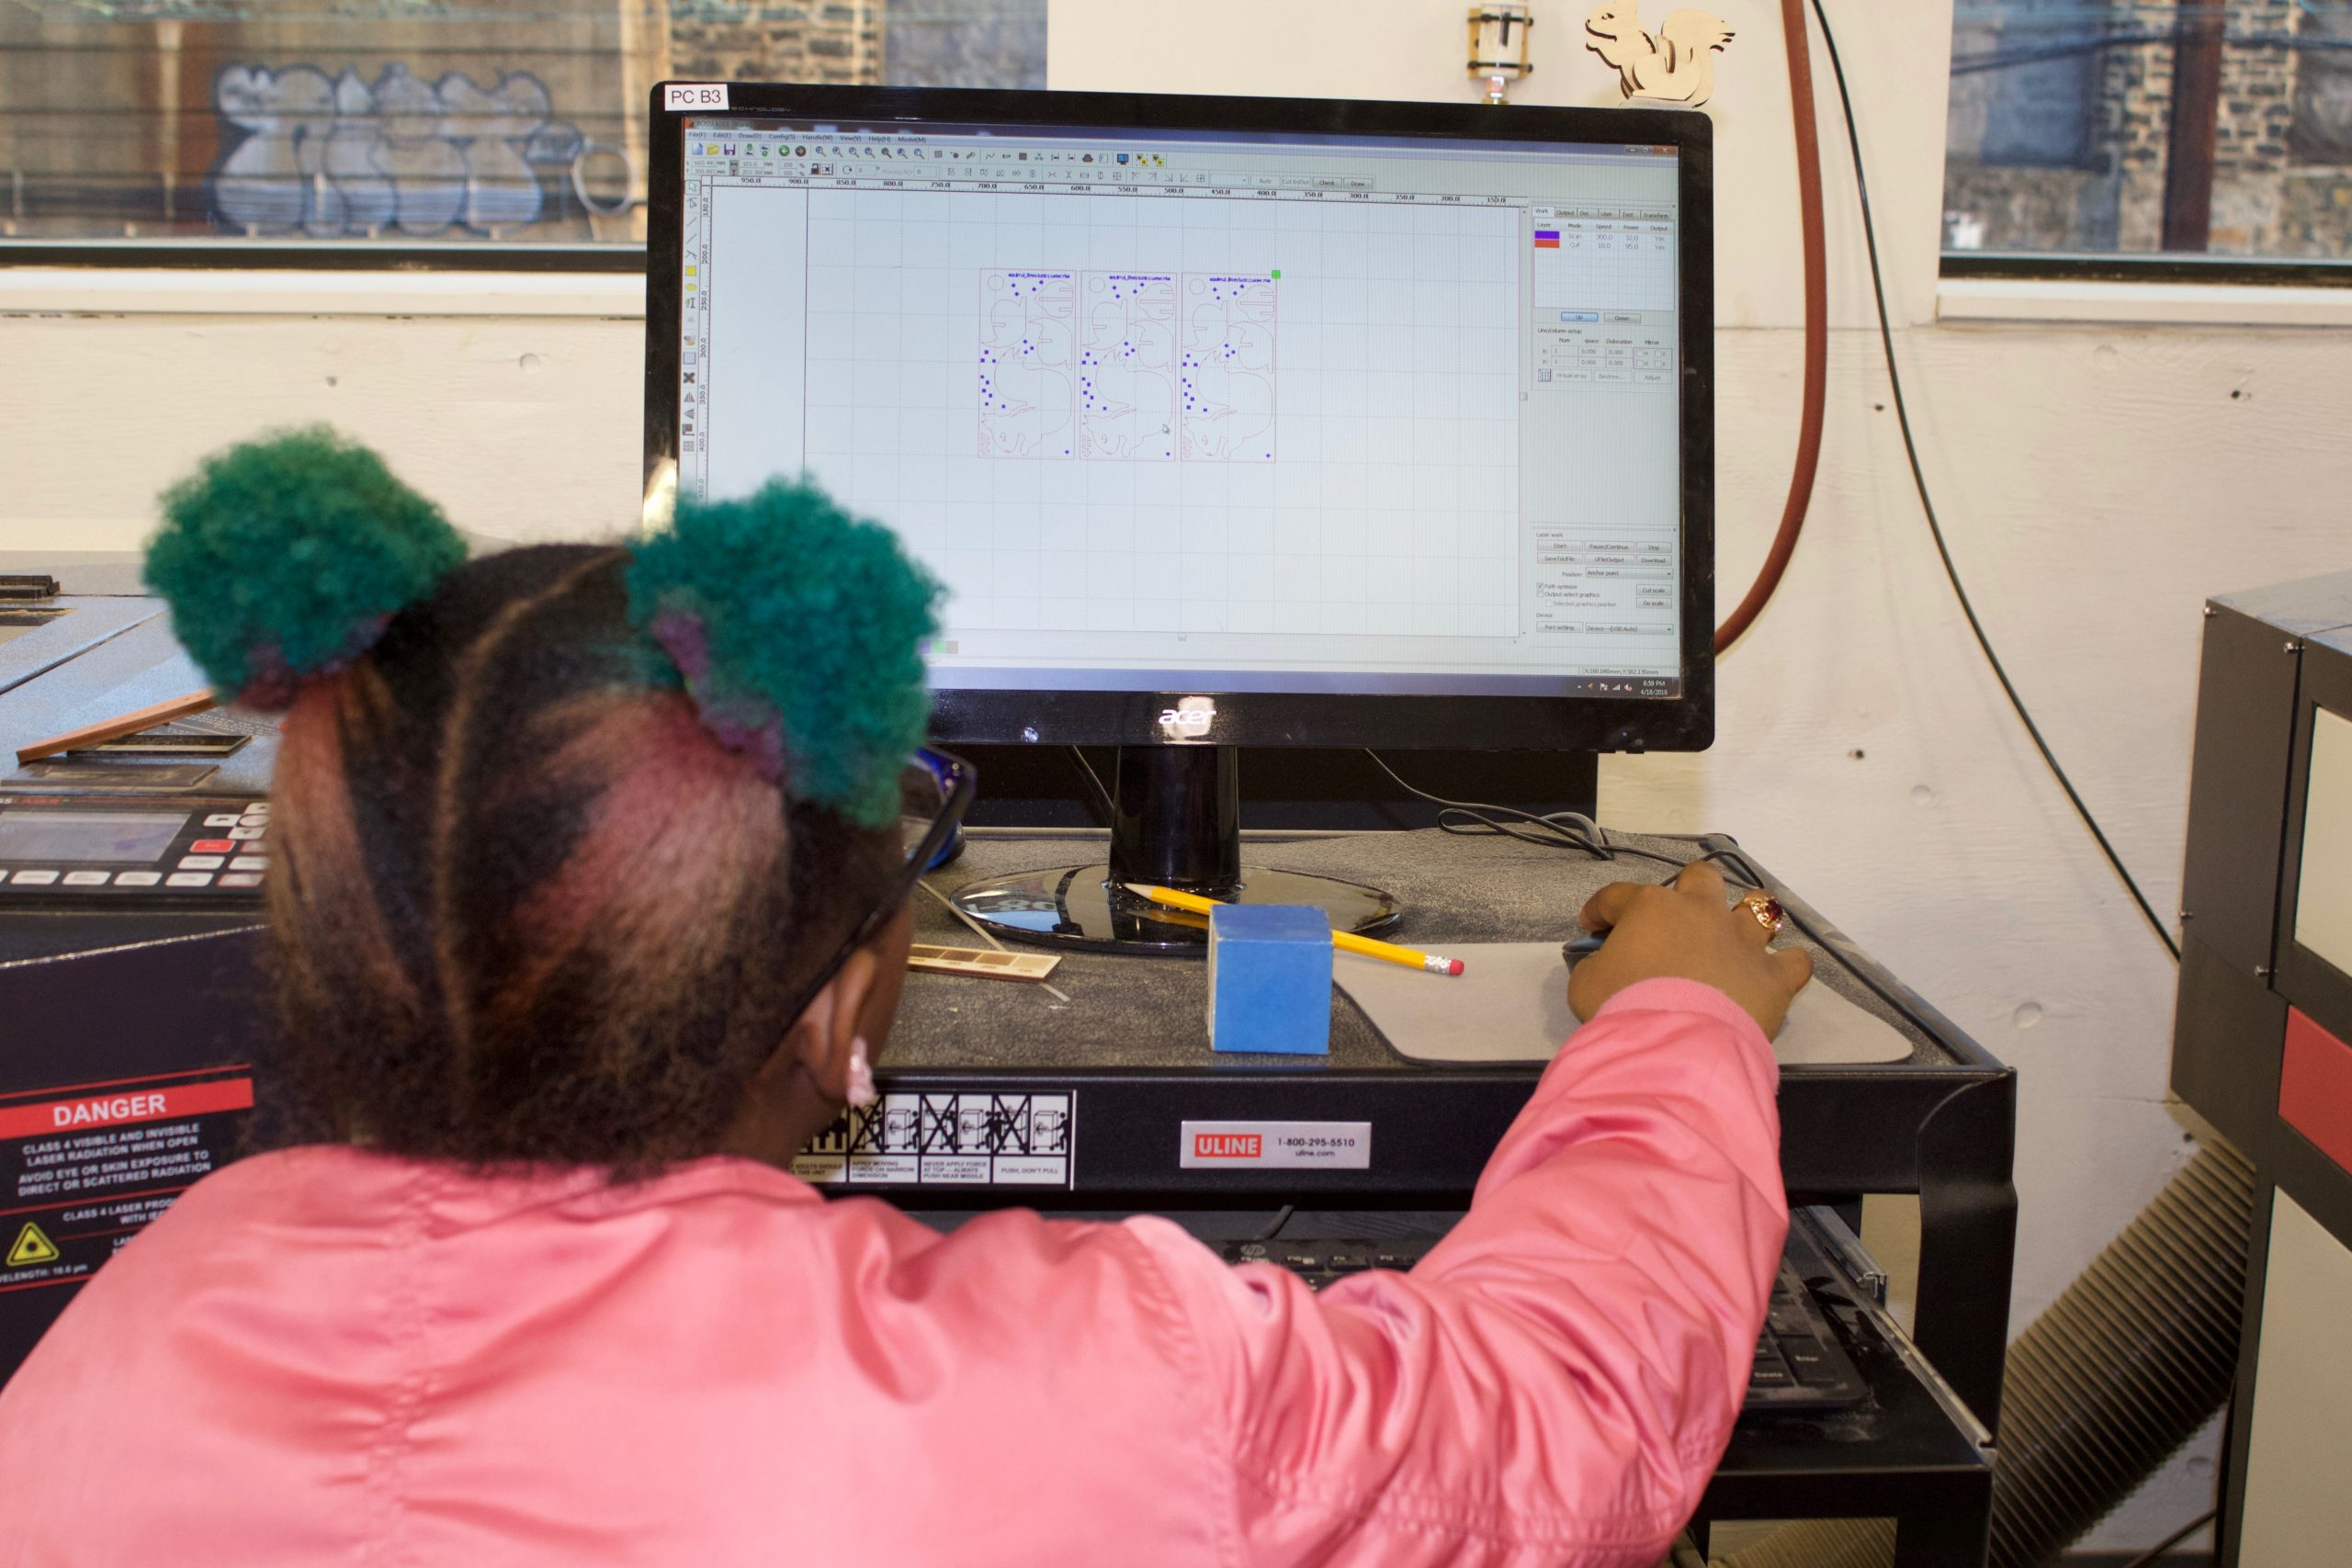 Young girl working at computer with digital fabrication software.